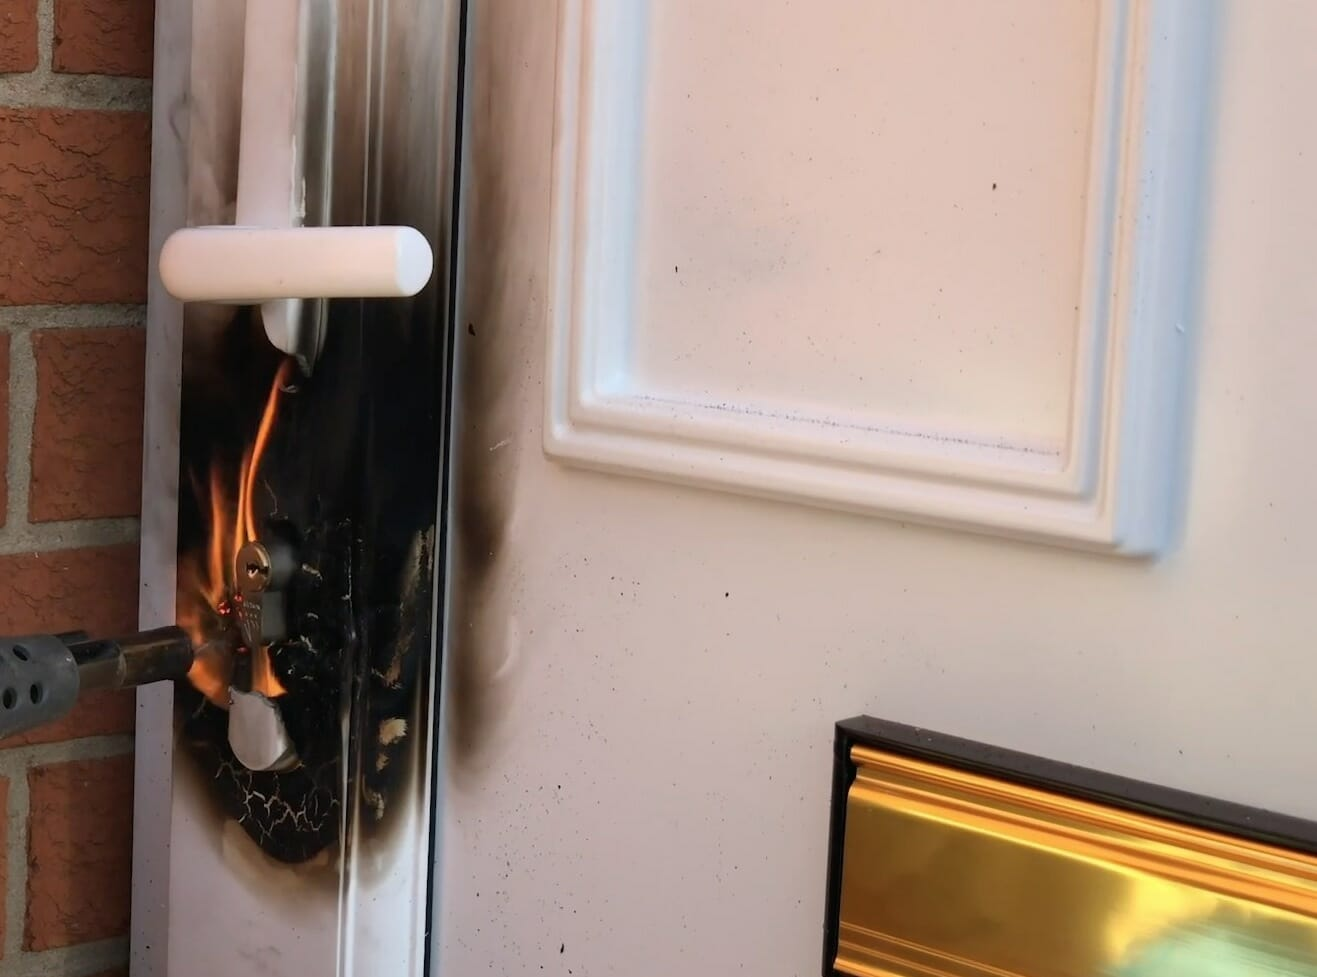 Blowtorch Burglarly on door